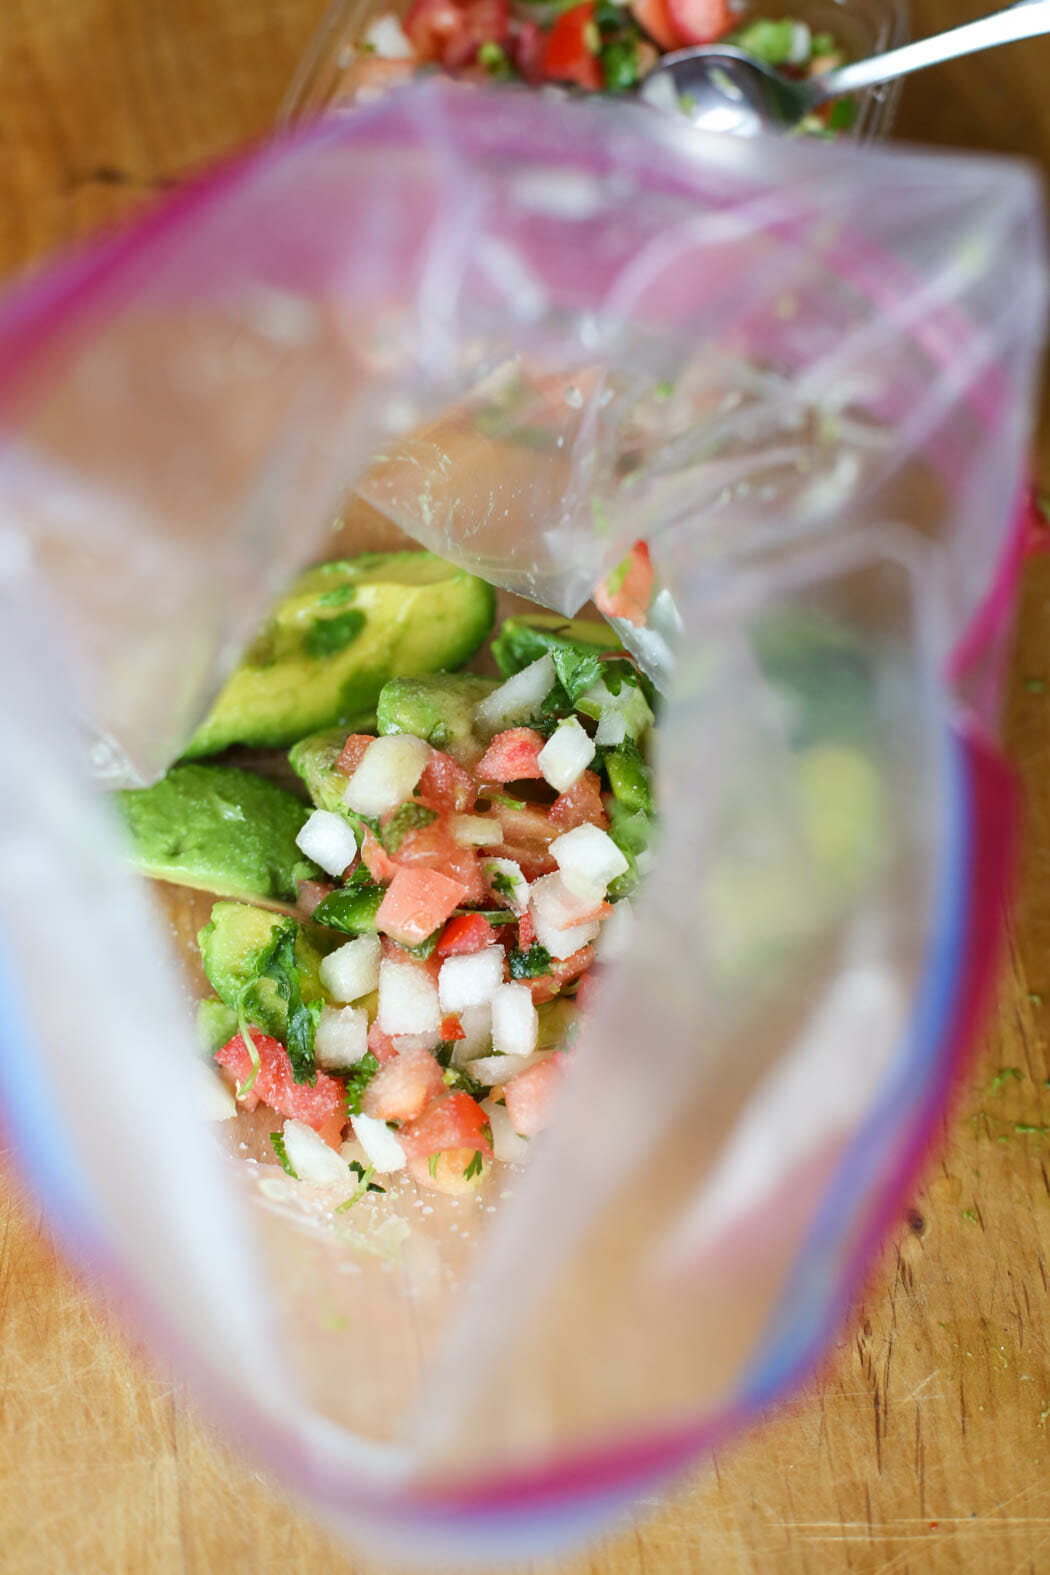 Guacamole ingredients in bag